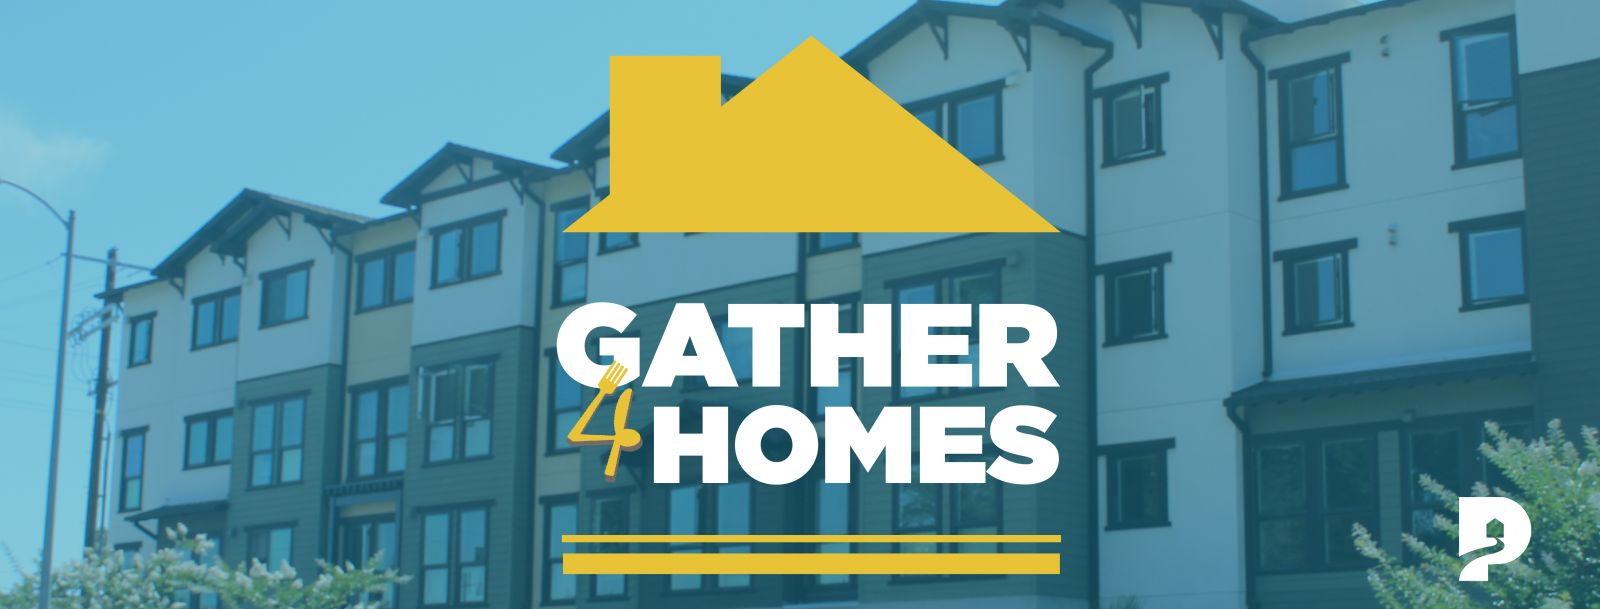 Gather 4 Homes